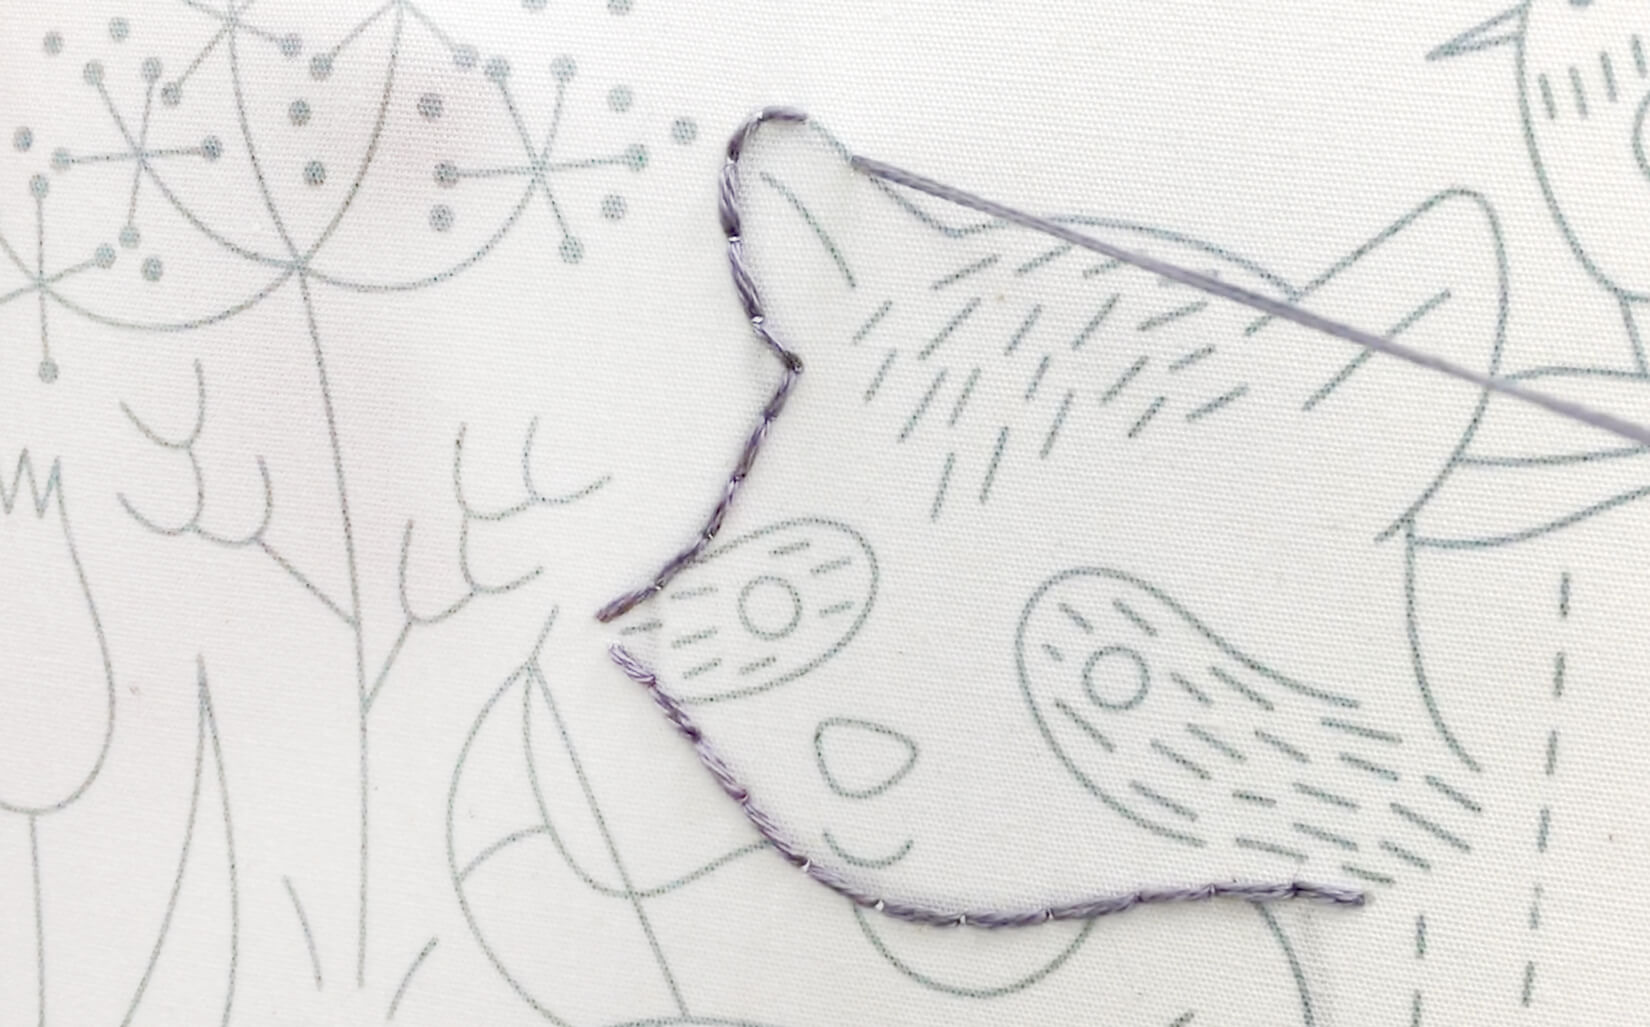 If you can color, then you can embroider. Free Stitching Raccoon Sampler embroidery pattern